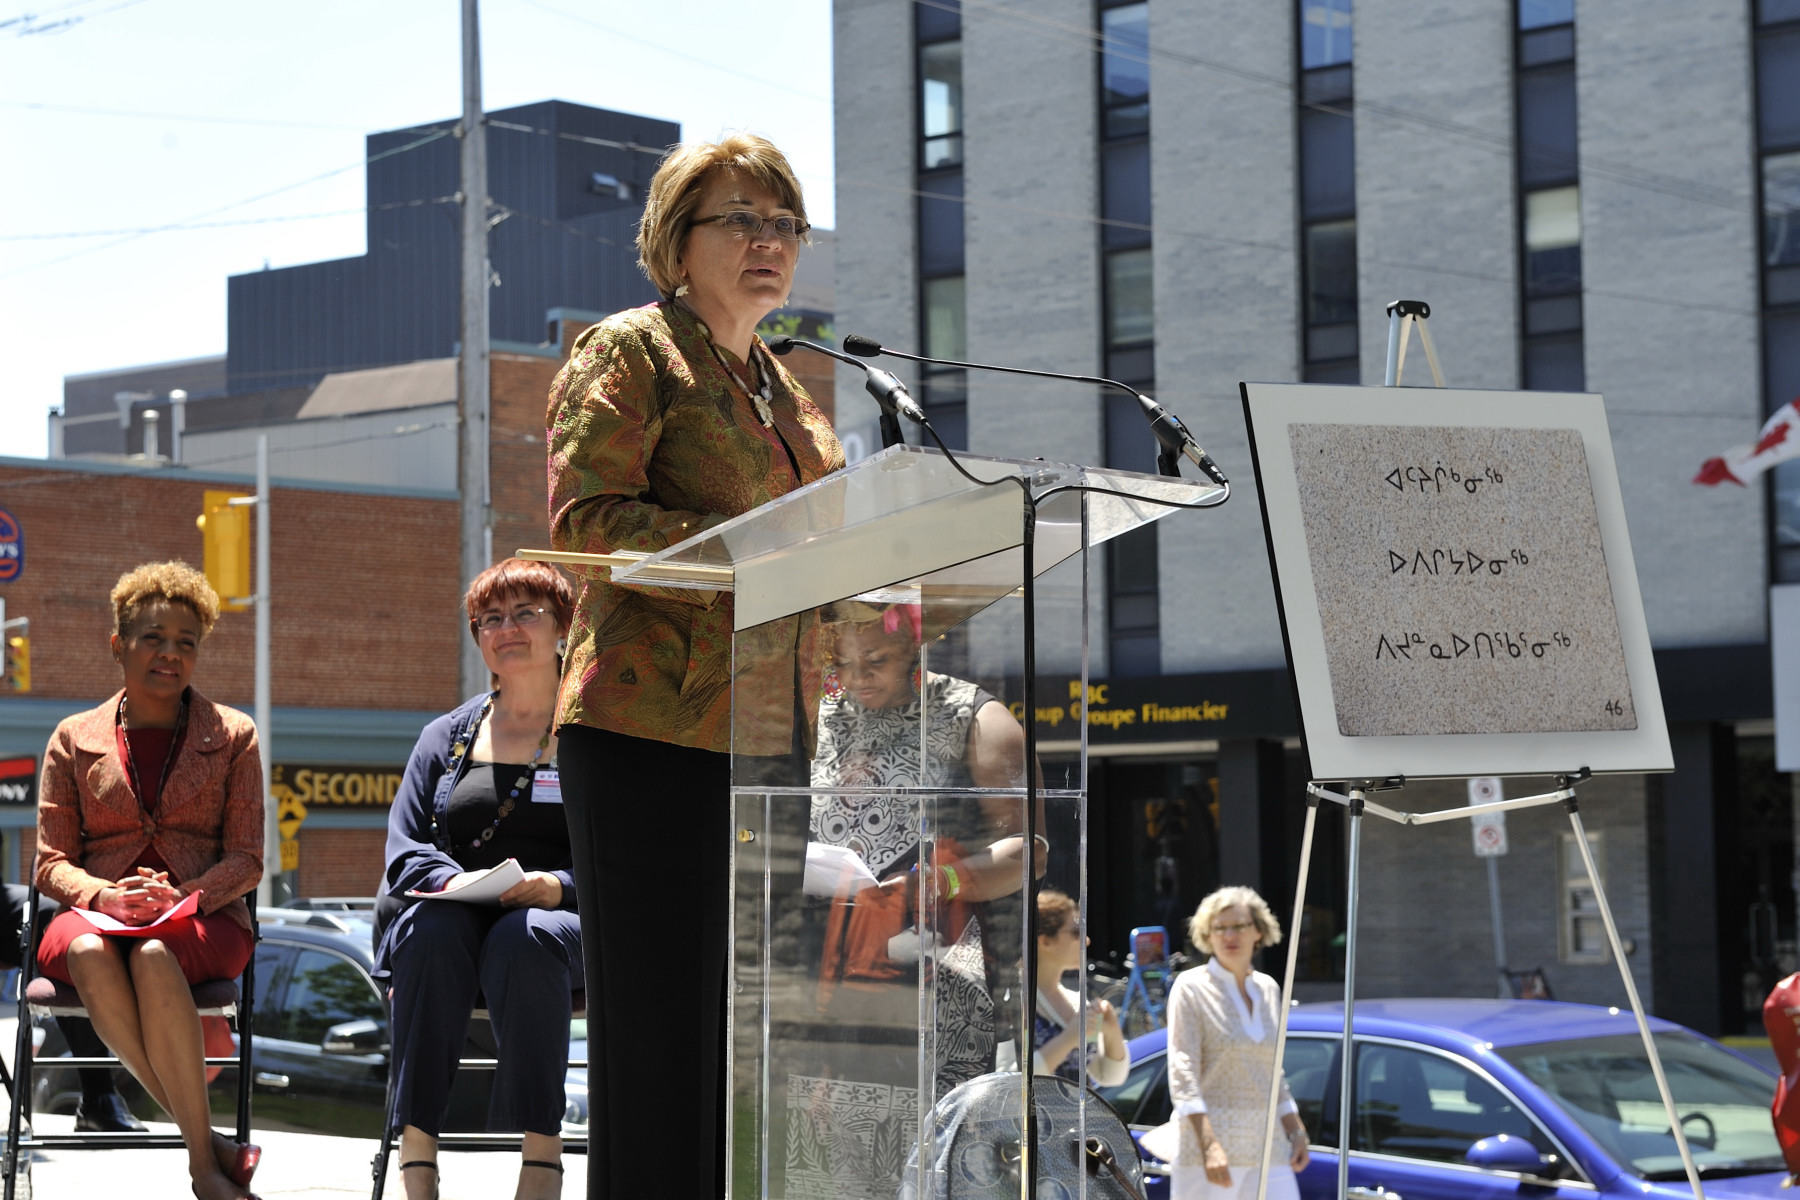 Inuit President Mary Simon read the plaque in Inuktitut.